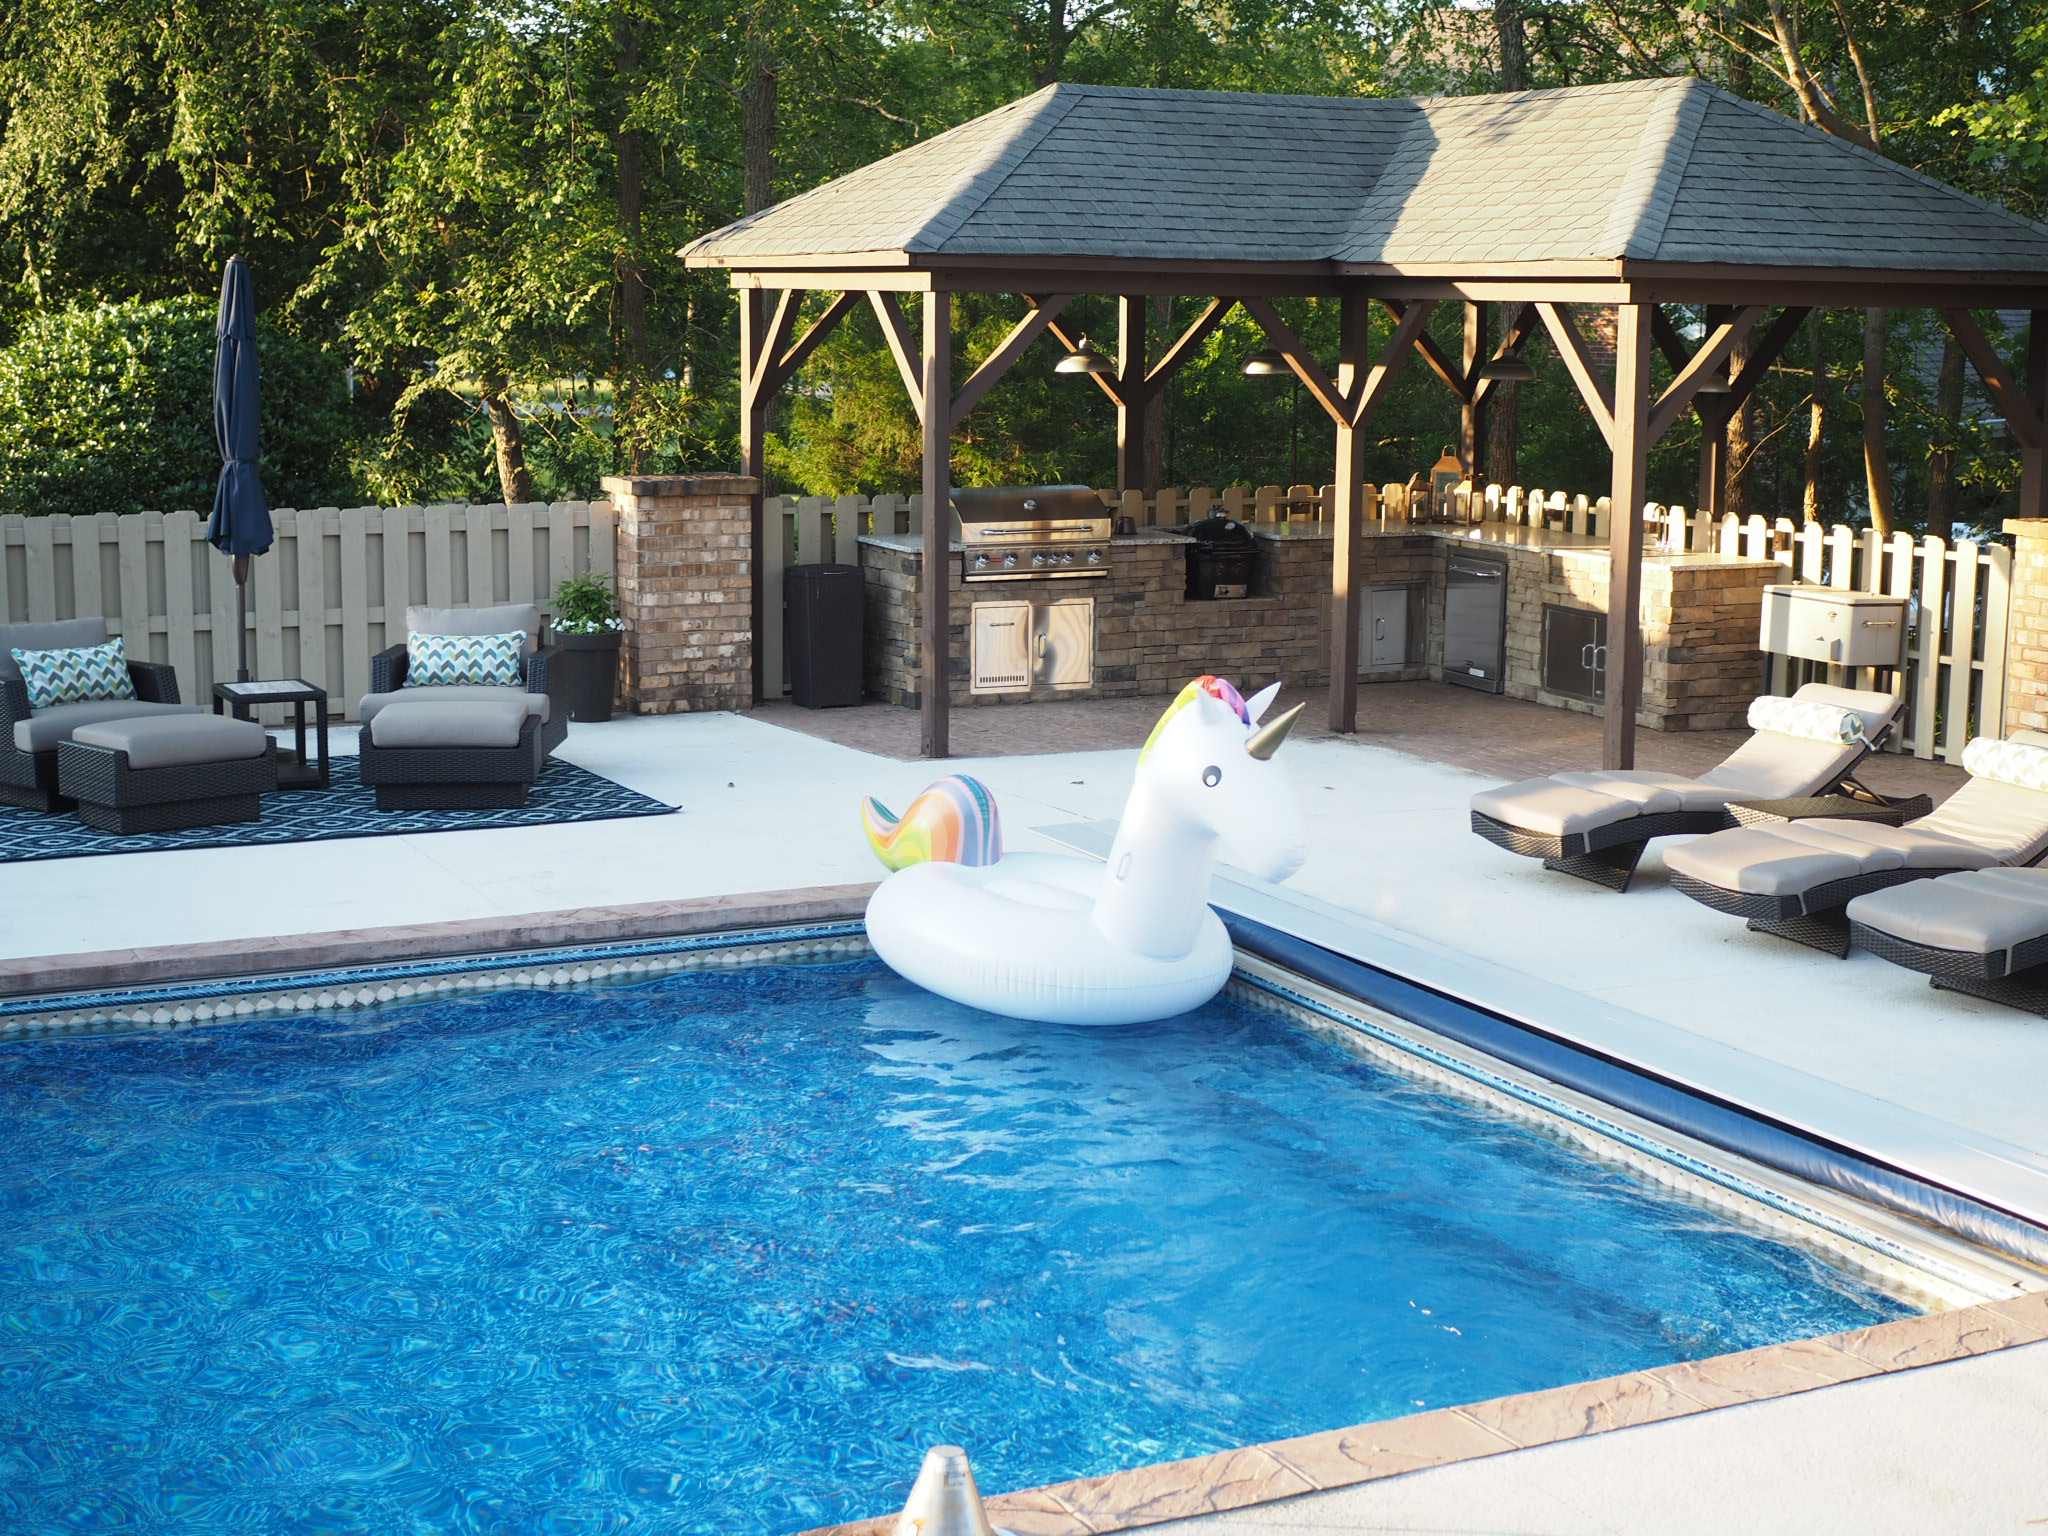 Patio Es And Pool Decks Can Oftentimes Present A Design Challenge The Be Oversized Expansive Defining Individual Or Seating